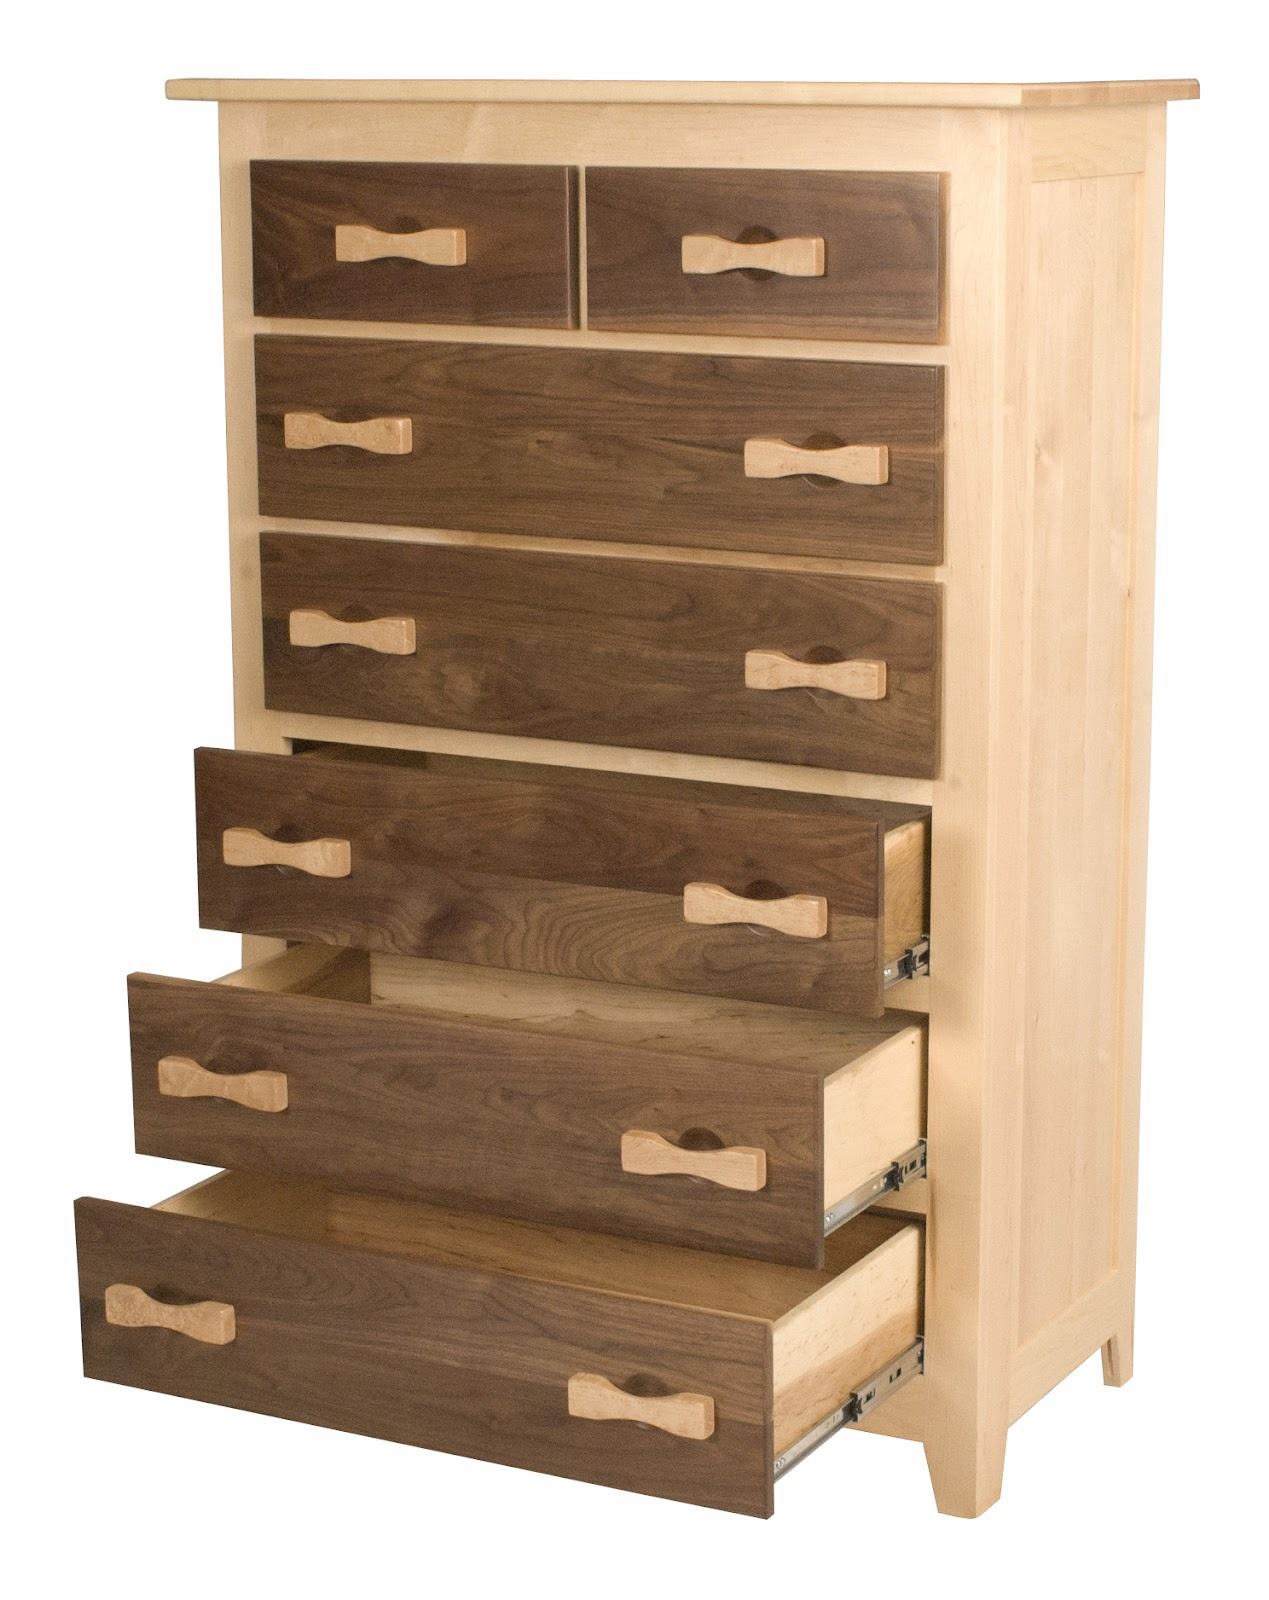 60 X 40 Shaker Vertical Dresser In Natural Hard Maple Frame And Walnut  Drawers, With Custom Zen Hardware In Birds Eye Maple. «»